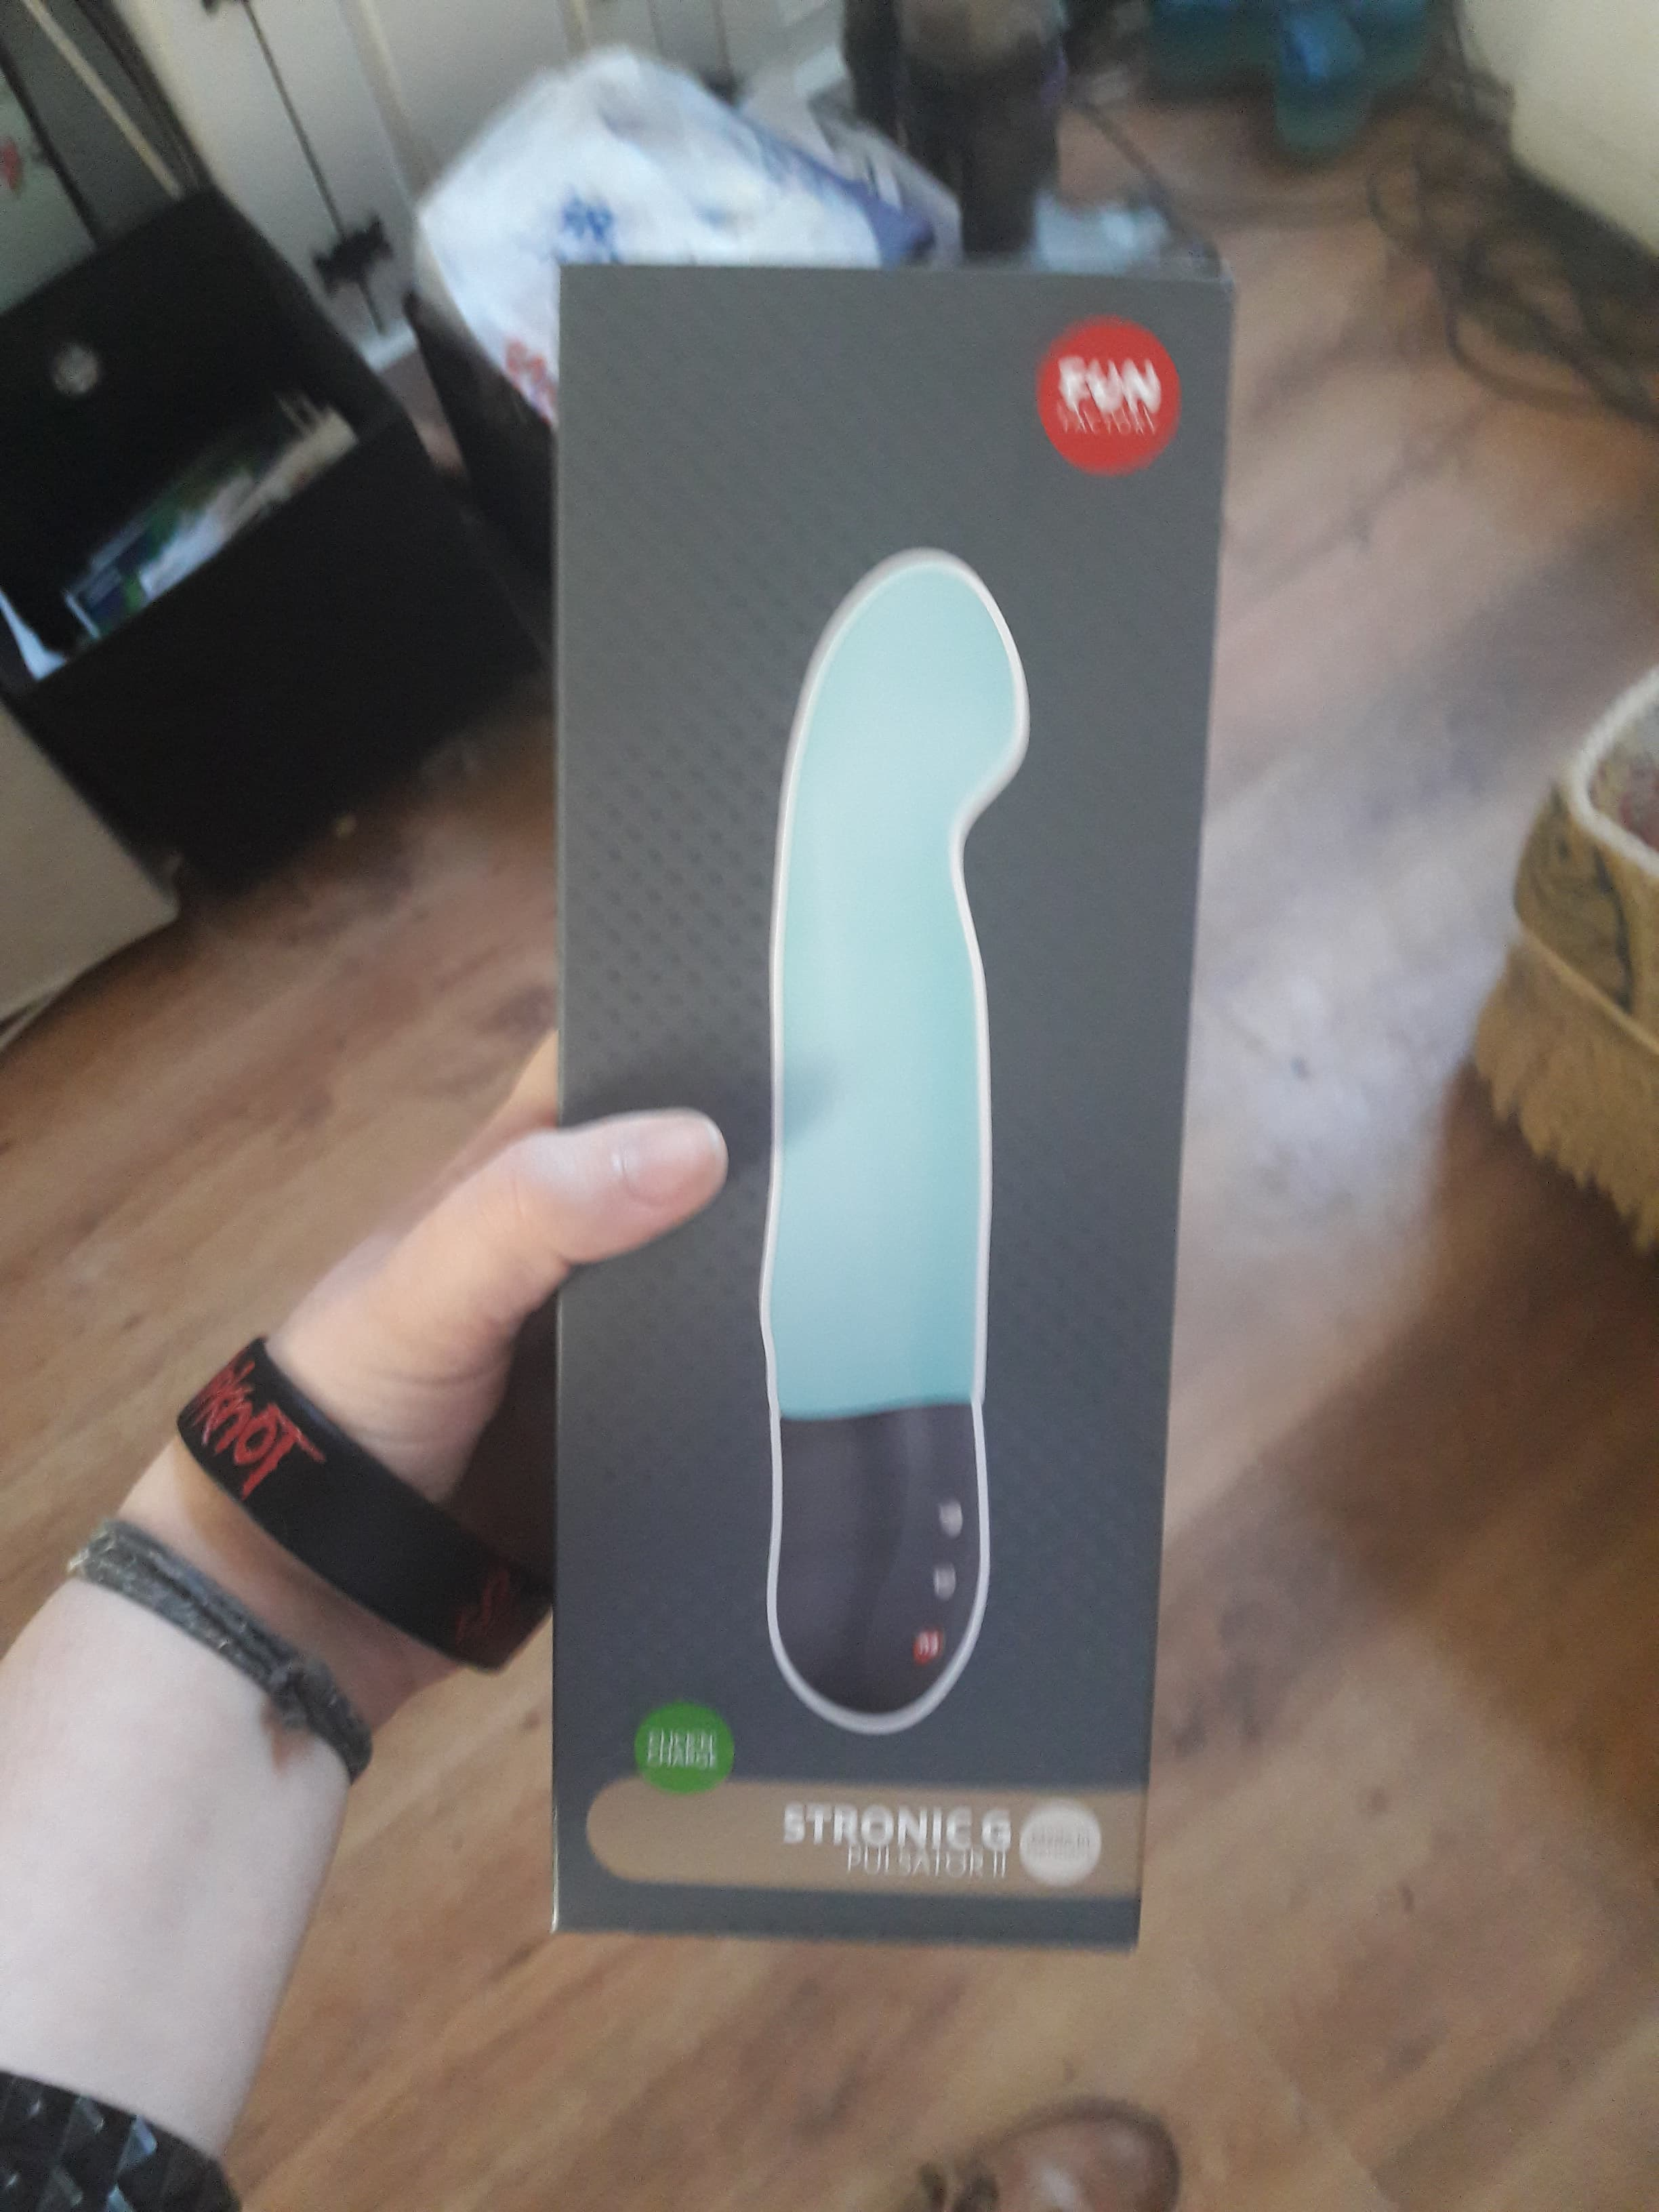 Image is of a white hand (Morgan's) holding a box with a picture of the blue Fun Factory Stronic self-thrusting dildo on it.